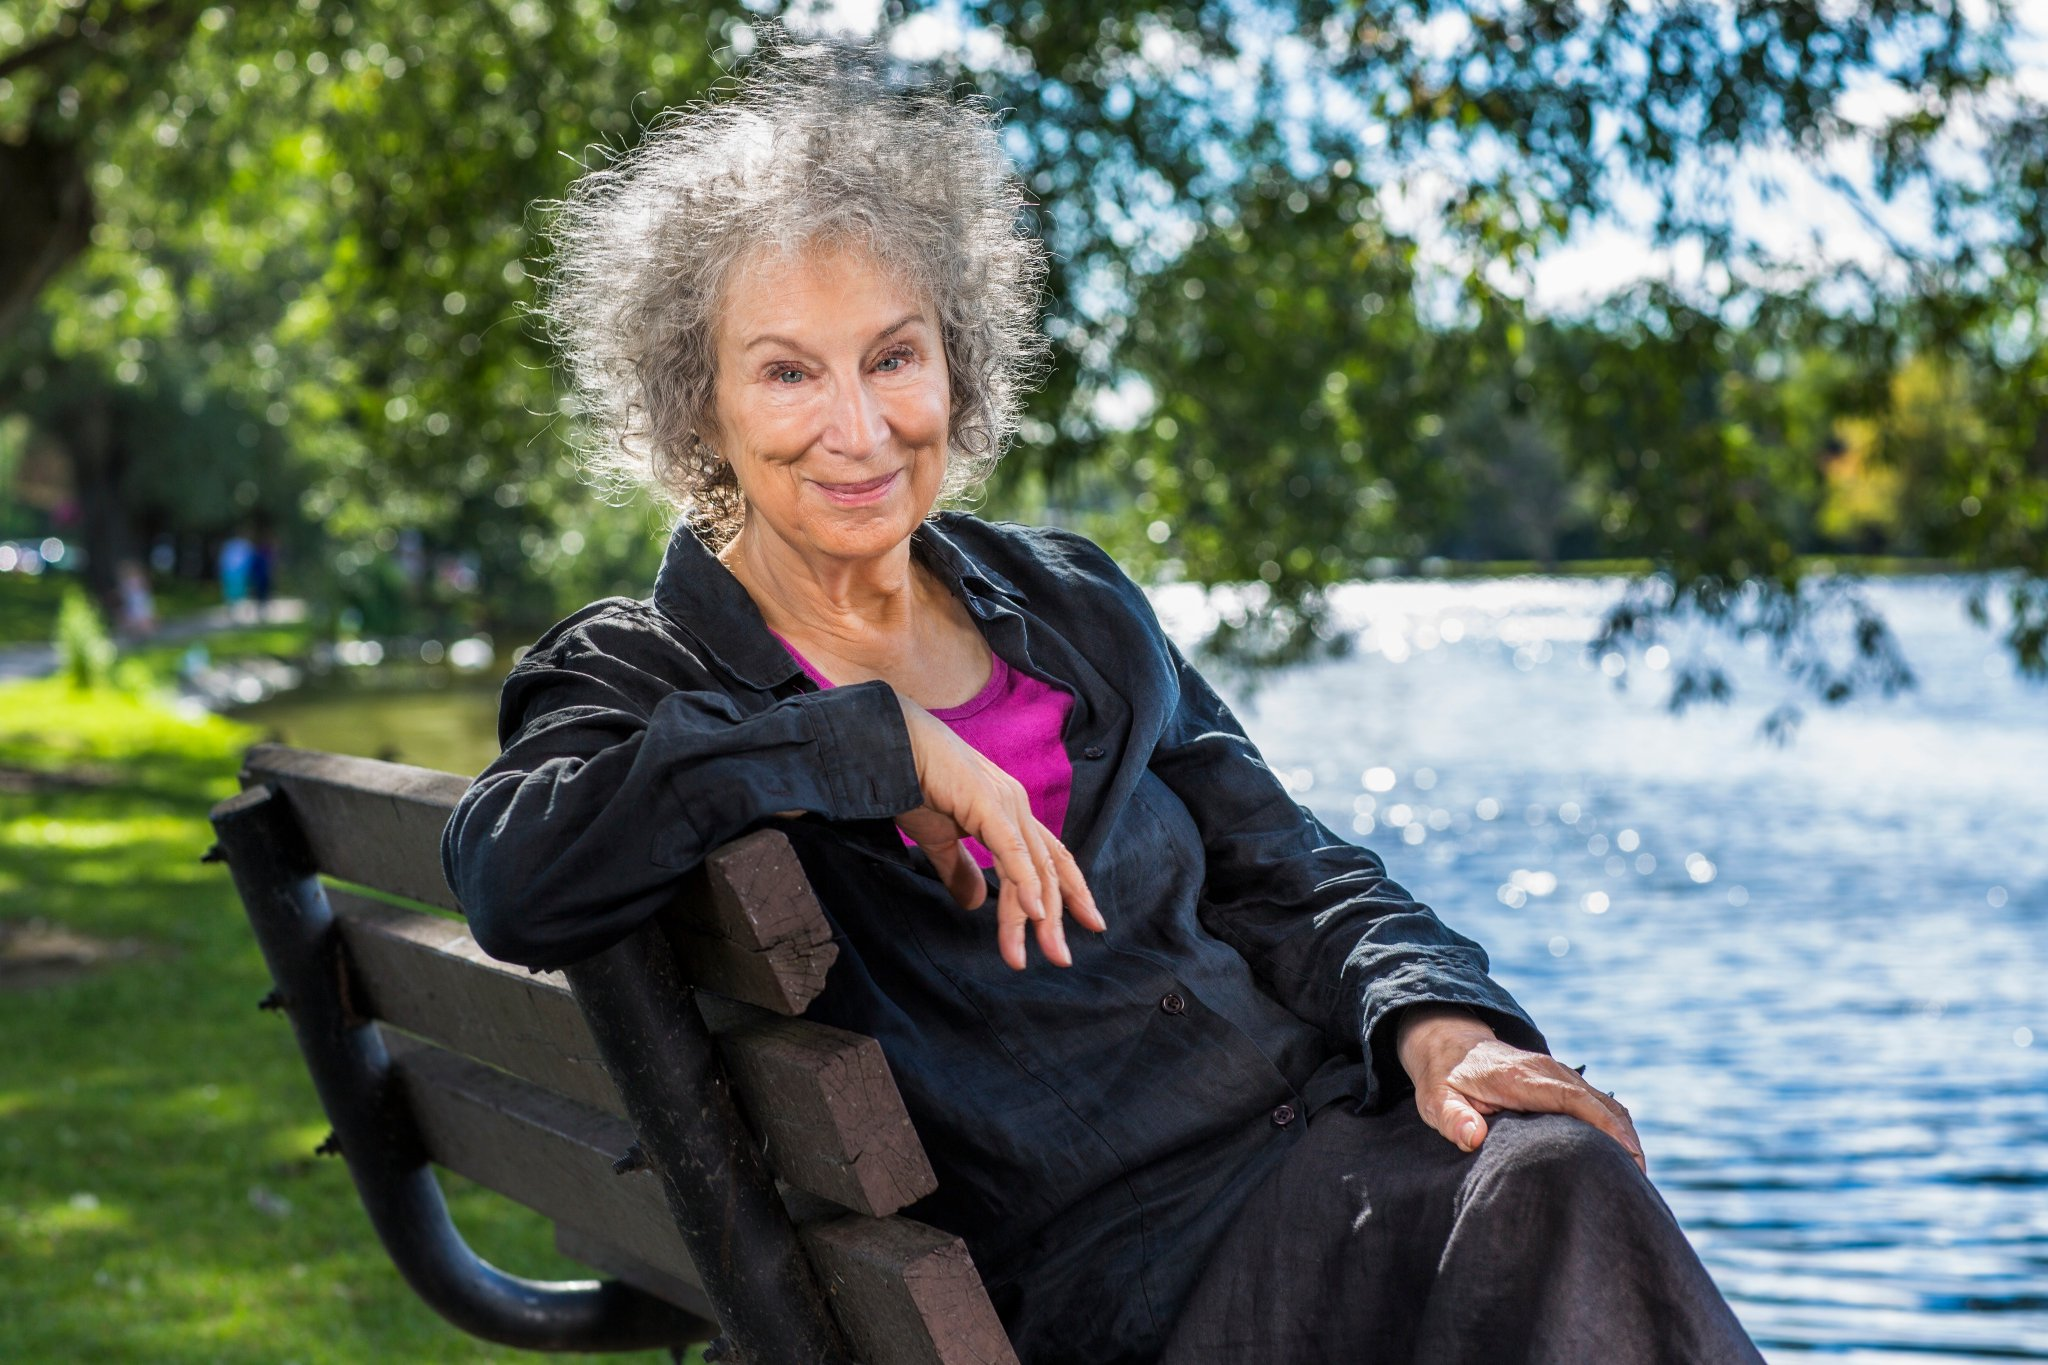 'The Handmaid's Tale' Season 2: Margaret Atwood Talks Sex, Race and Anger in Post-Trump America